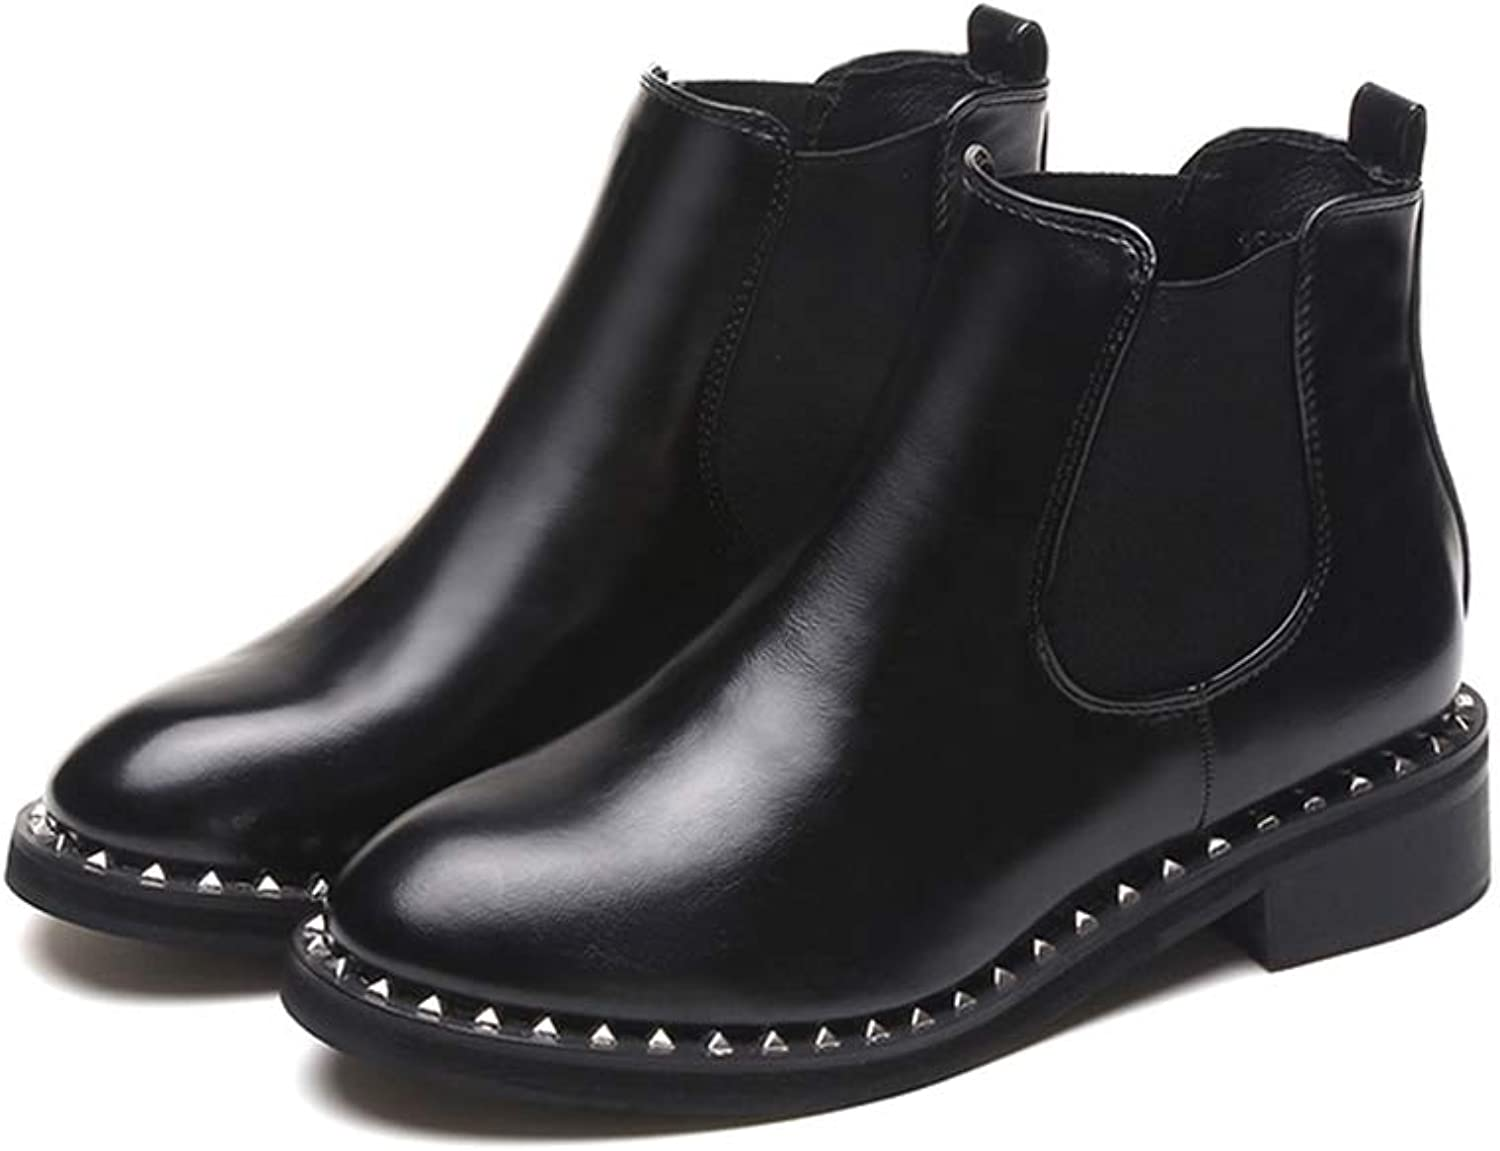 T-JULY Women's Autumn Rivet Chelsea Boots Leather Ankle Boots Girls Chunky Rubber Low Heels Booties